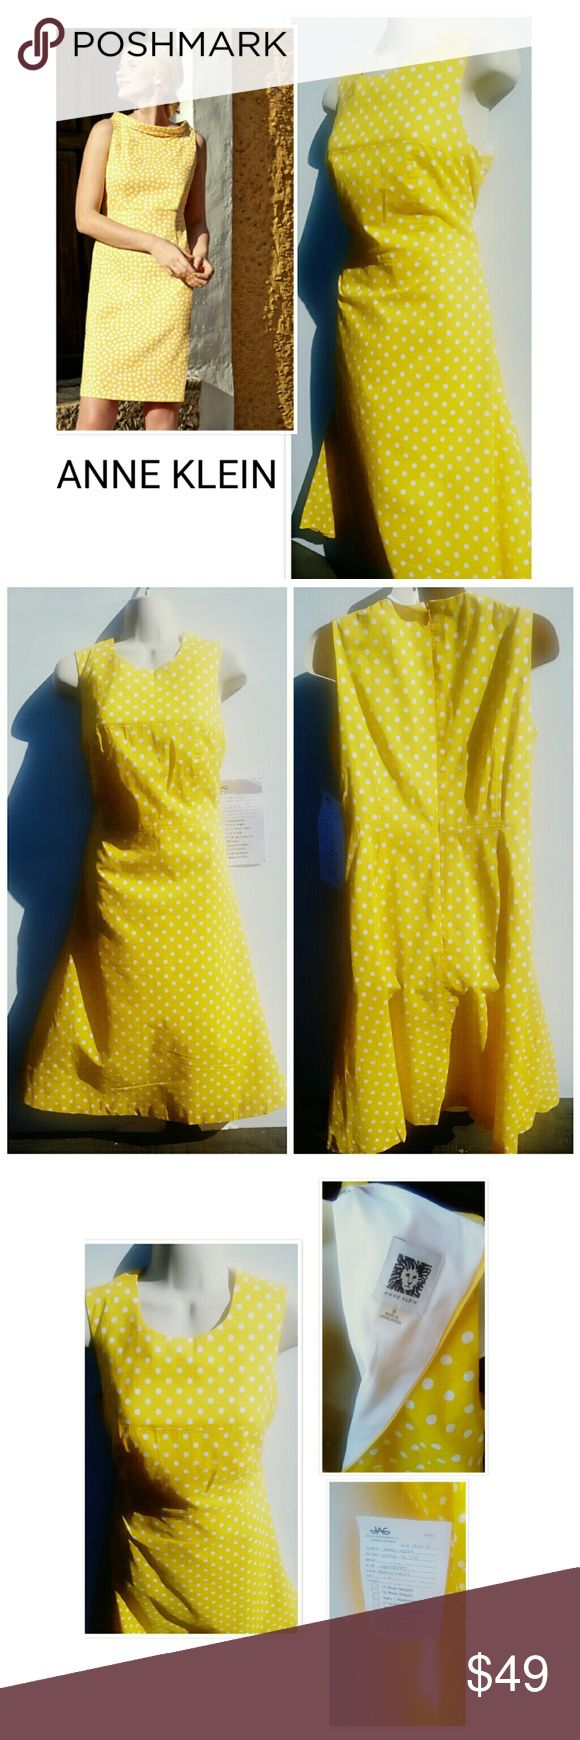 NWT! LEMONADE YELLOW/WHITE POLKA-DOT DRESS 6 ANNE KLEIN LEMONADE YELLOW AND WHITE POLKA-DOT DRESS  EXCELLENT ANY OCCASION  DRESS BUST 34IN  WAIST 16IN  LENGTH 39IN  BUY NOW OR BUNDLE AND SAVE Anne Klein Dresses Midi